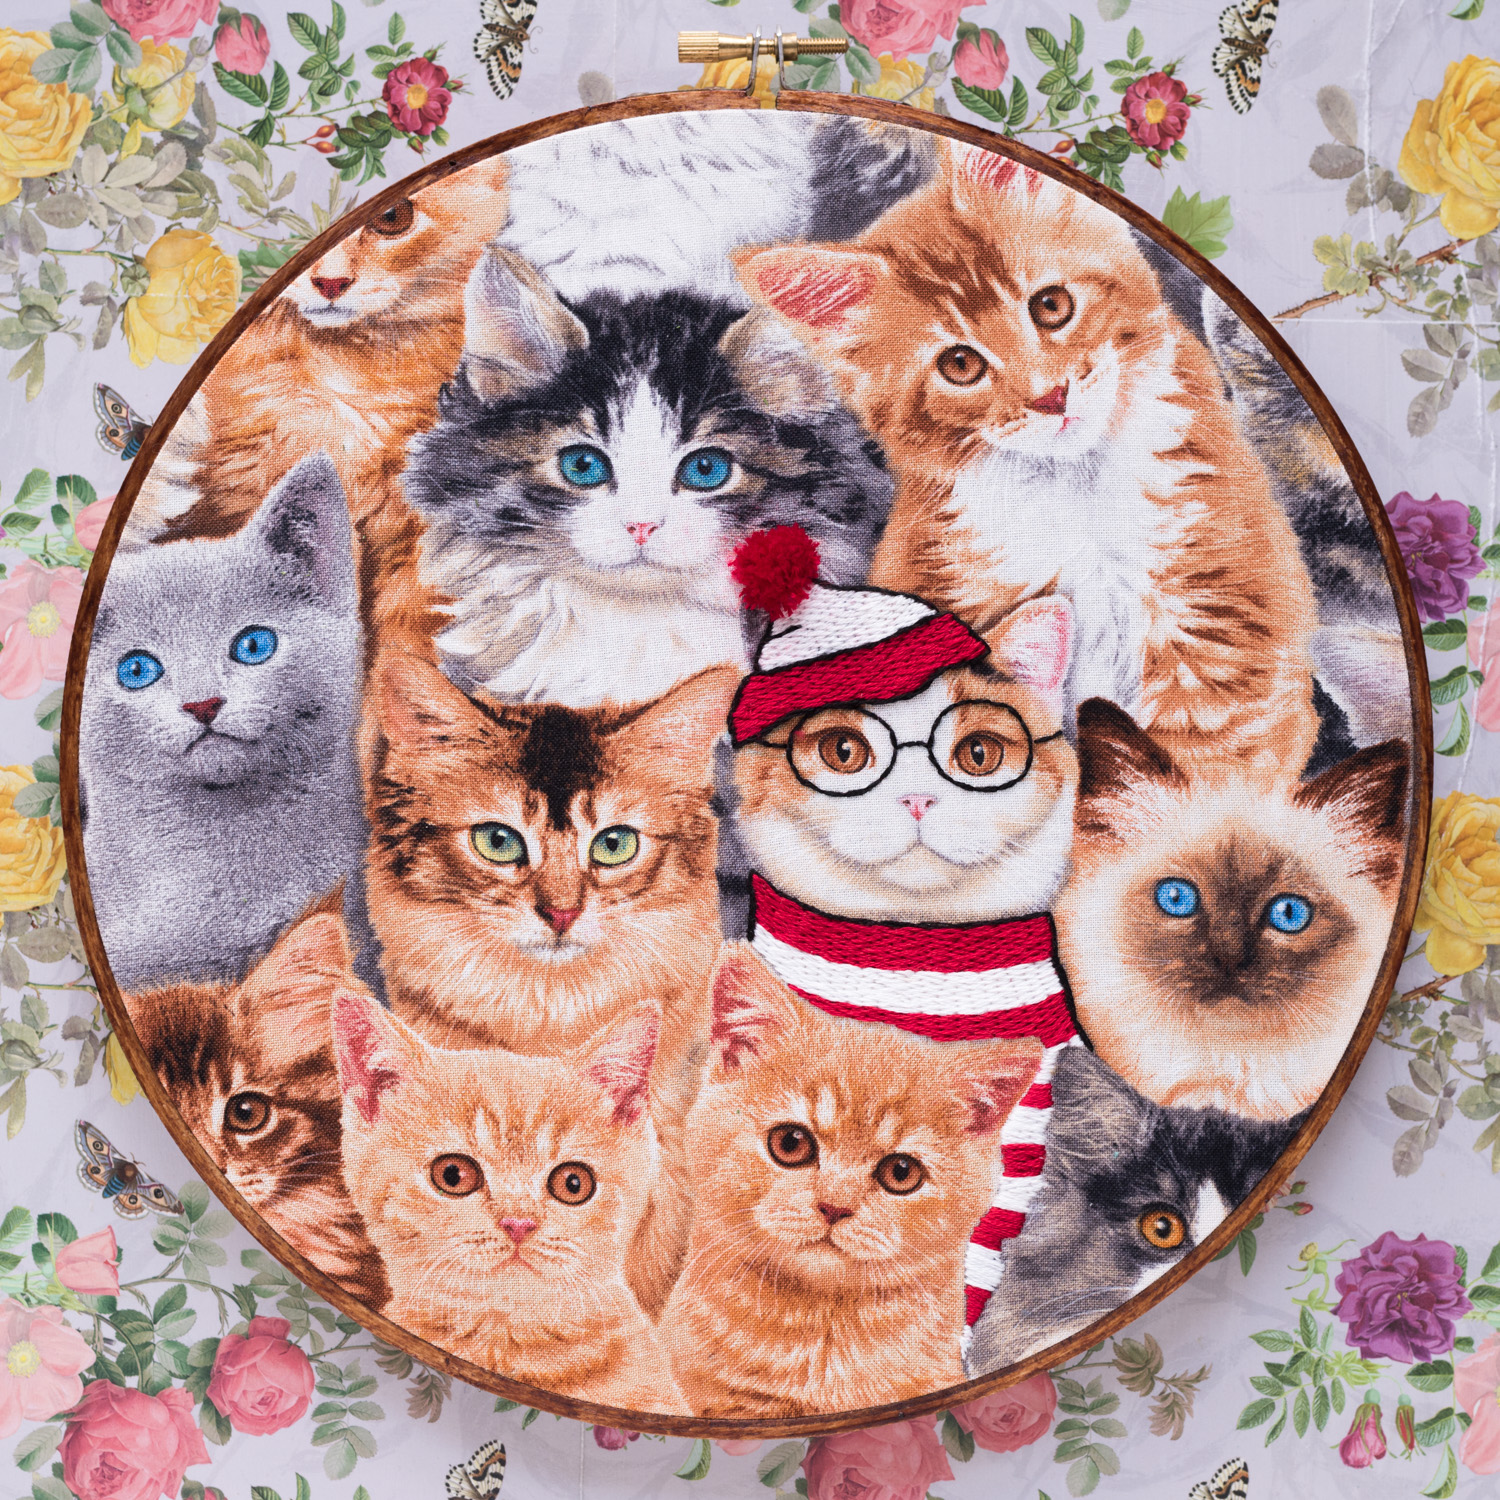 Cat embroidered as wheres wally